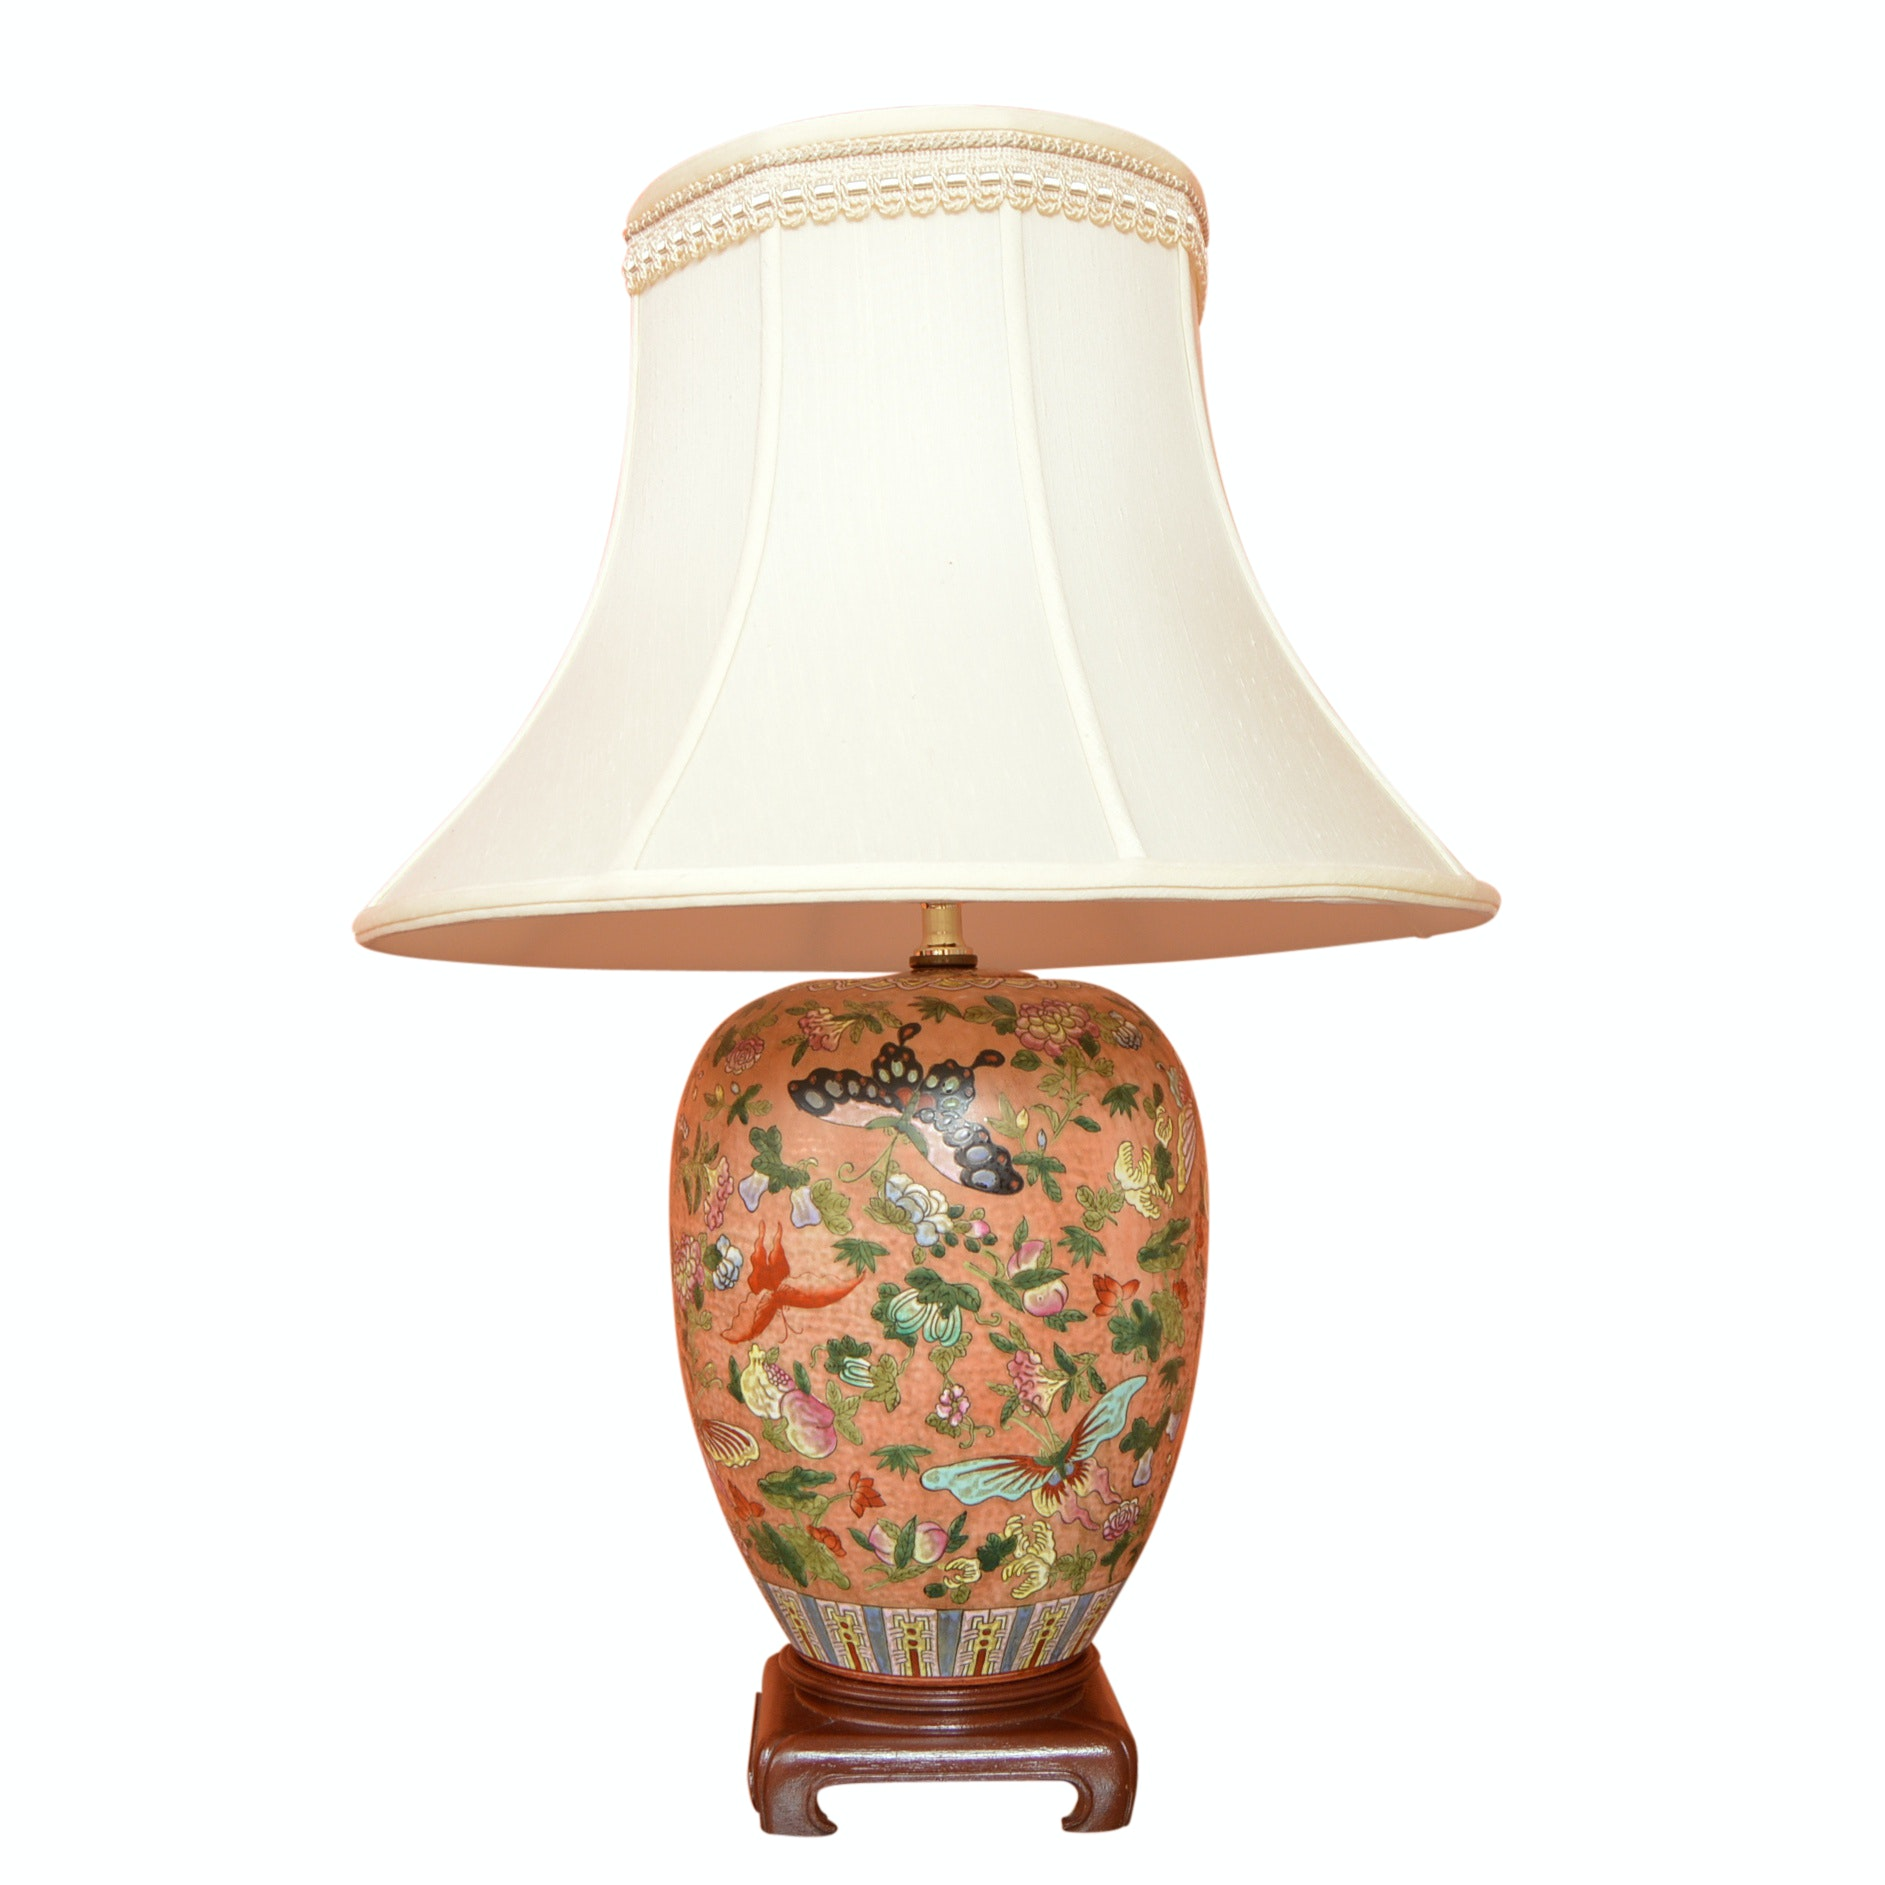 Chinese Butterfly Motif Porcelain Lamp